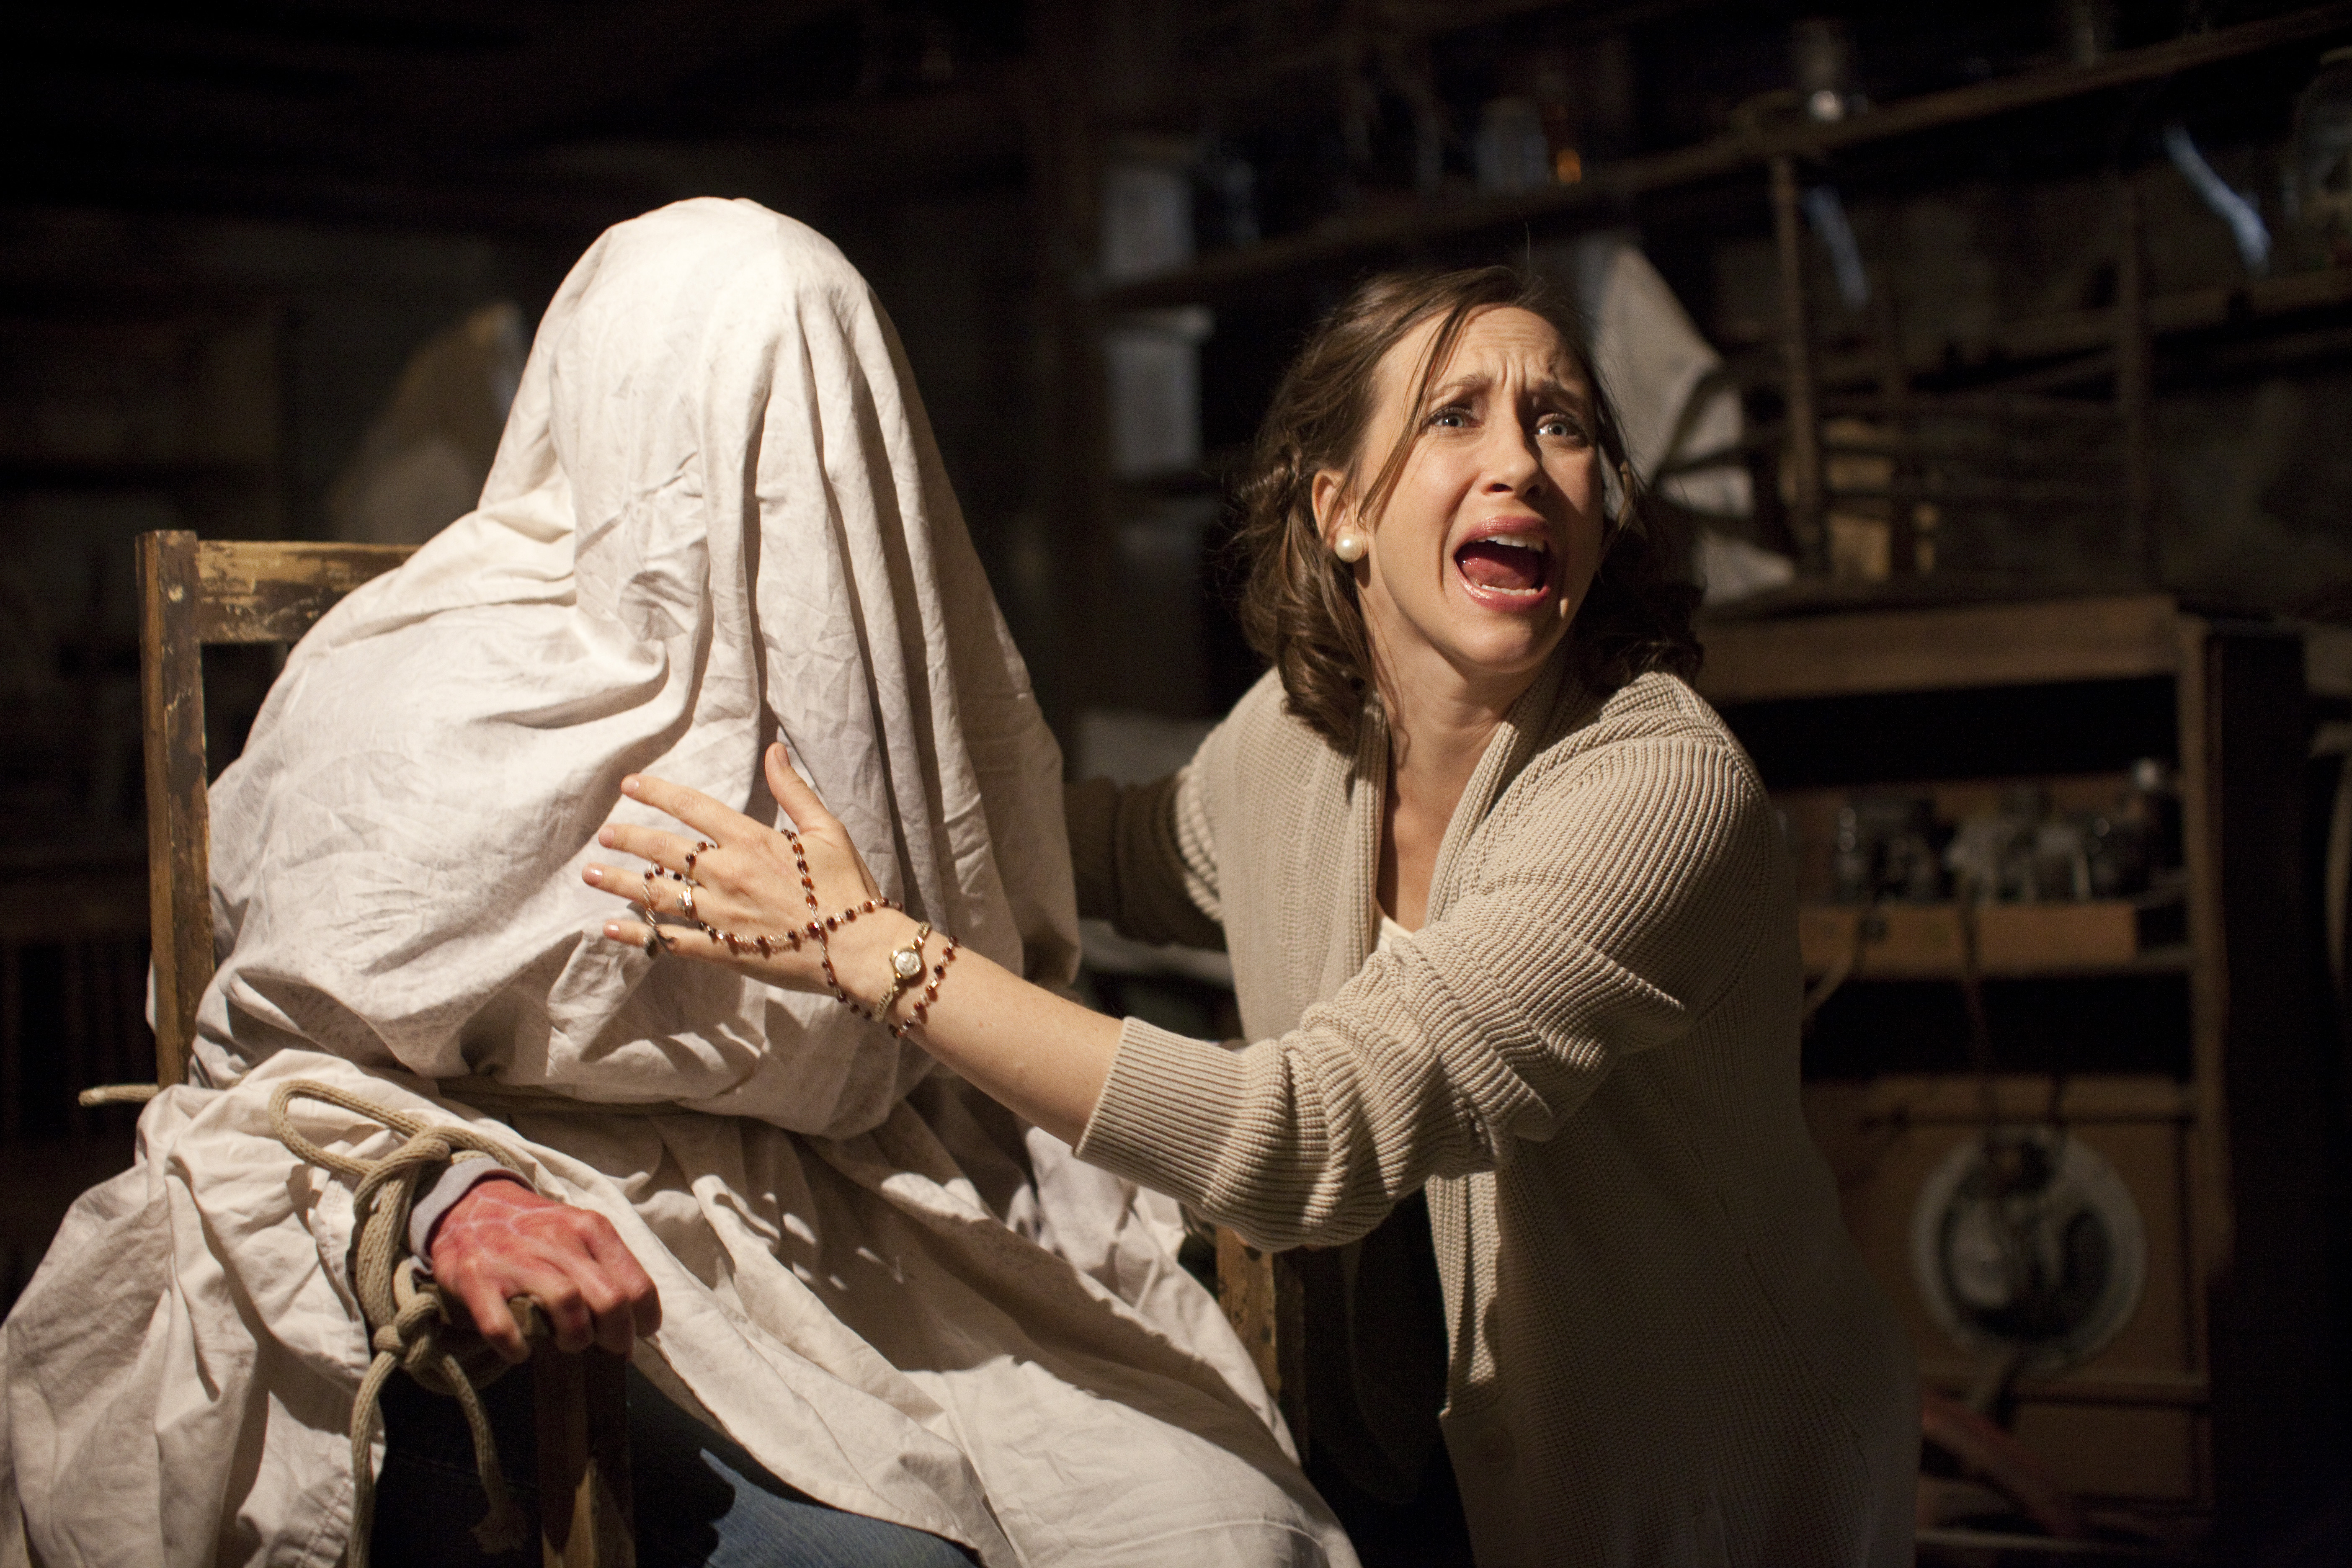 CJD SE 11991 New Stills From The Conjuring Released